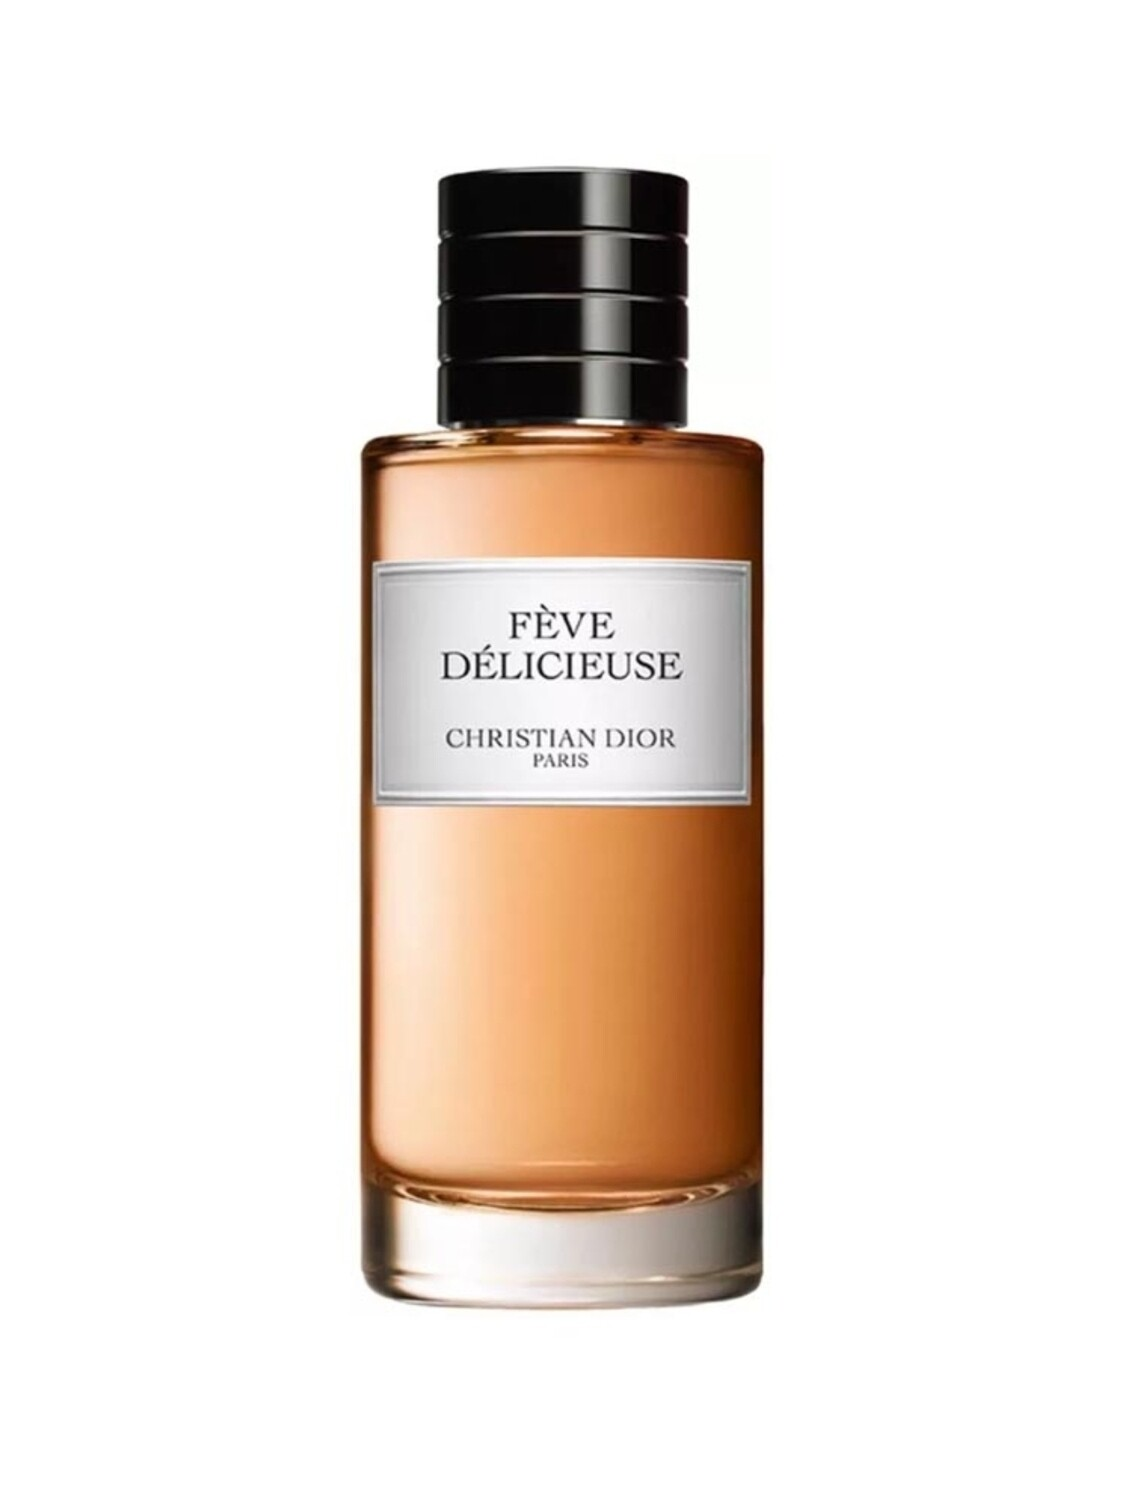 Feve Delicieuse by Christian Dior 125mL EDP